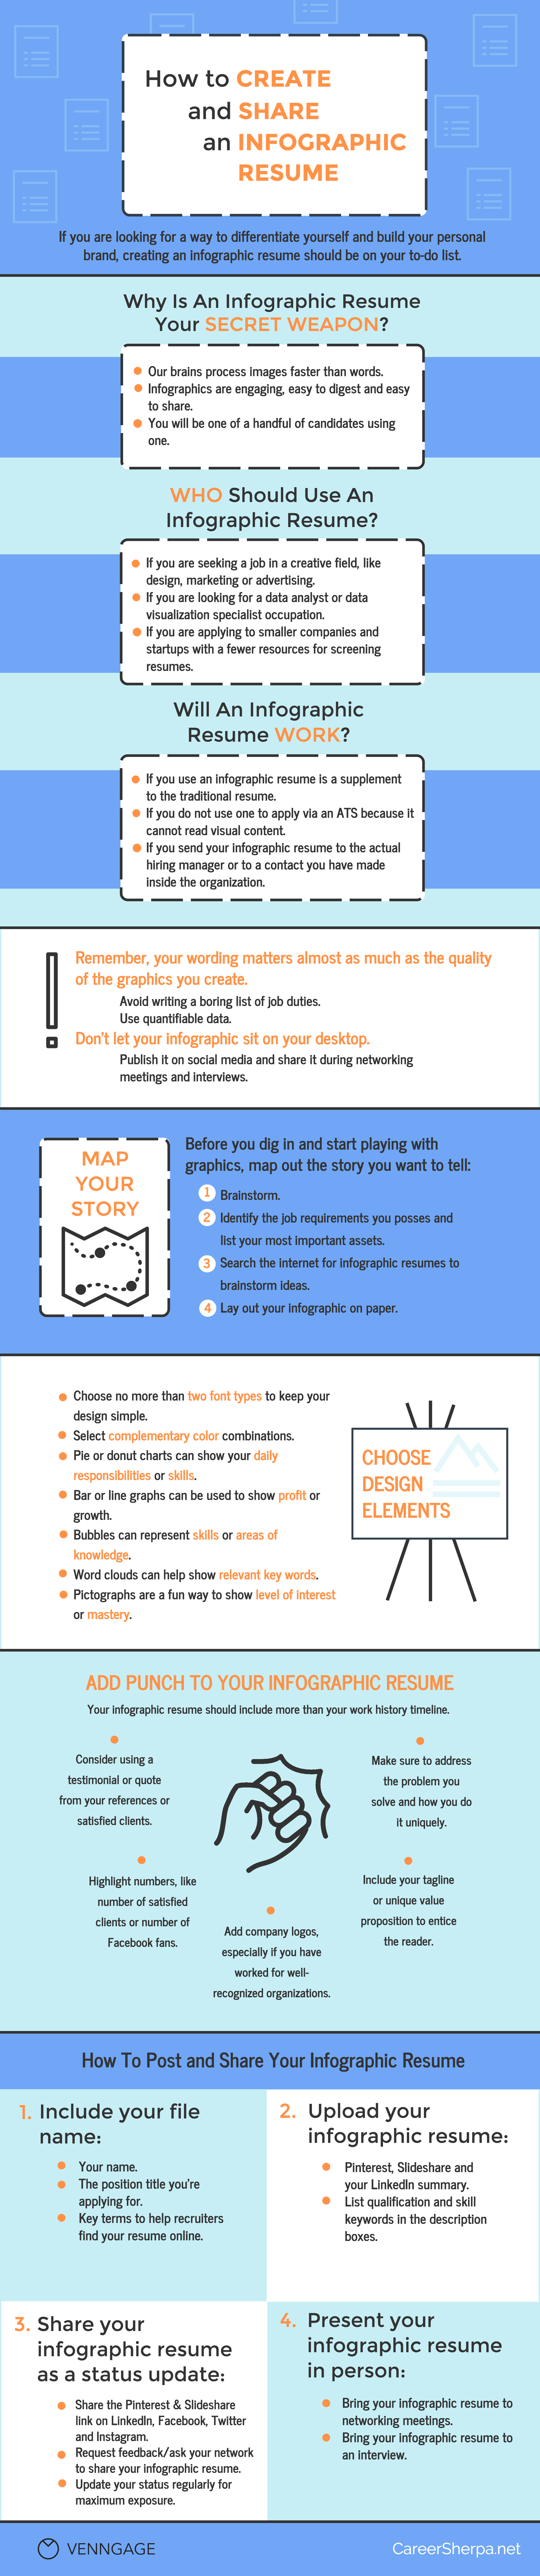 infographic-resume-1.png